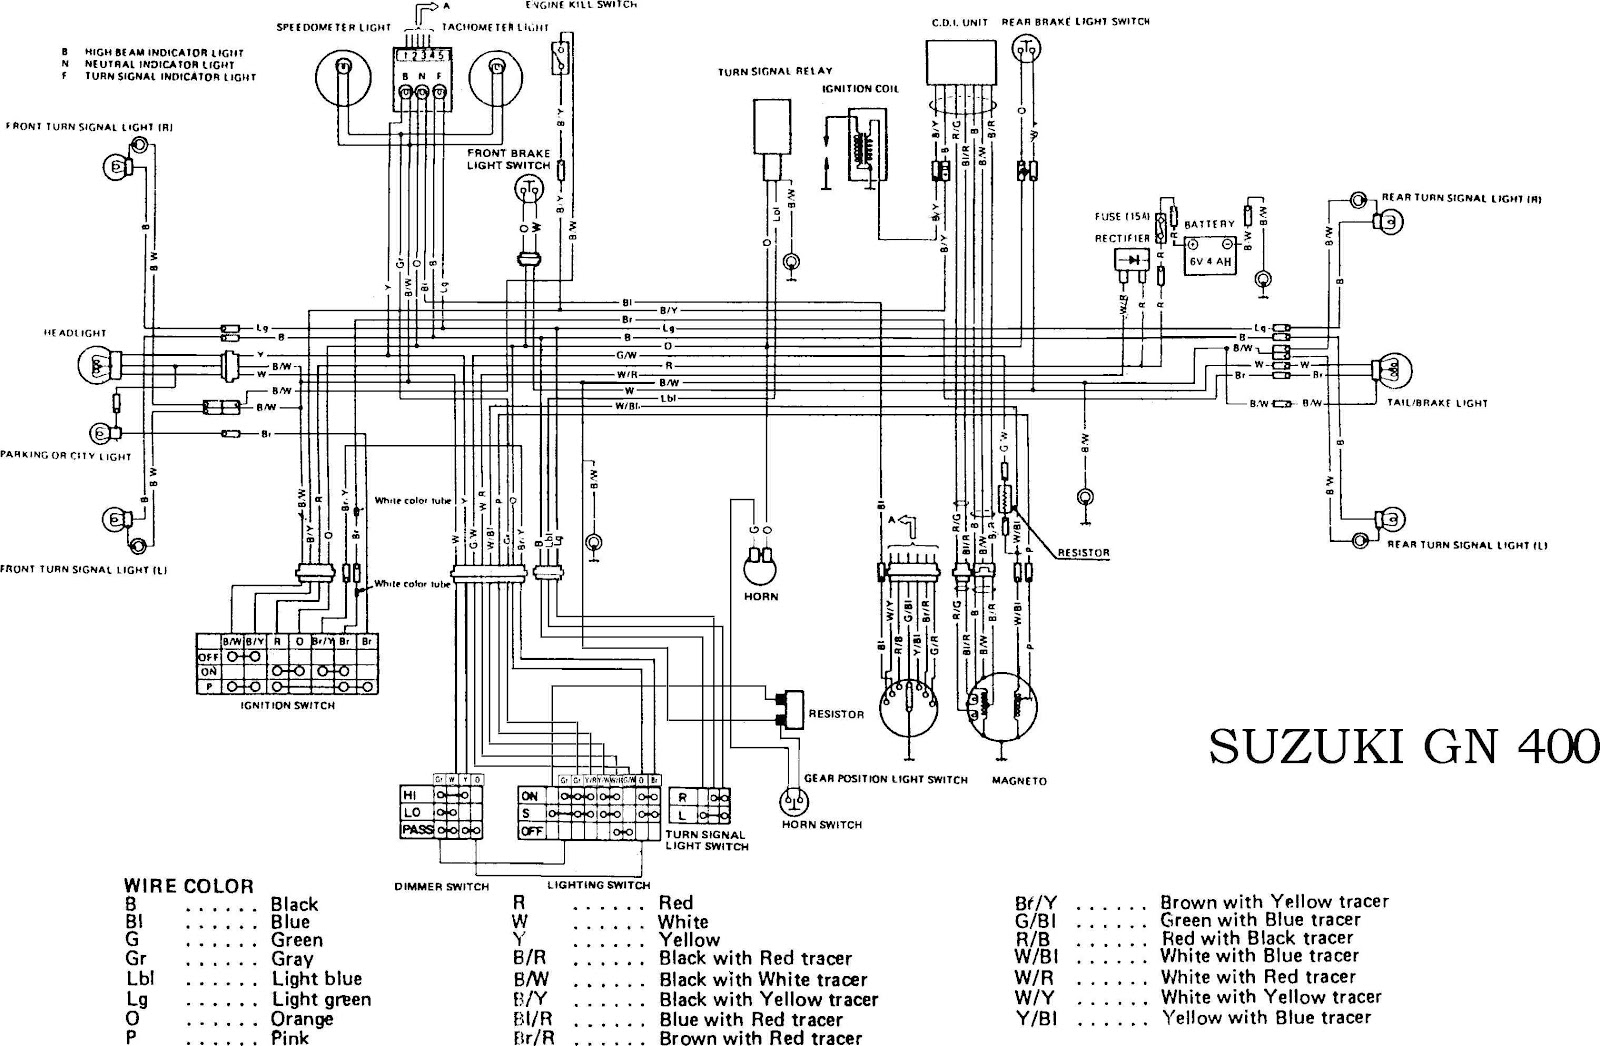 2008 polaris sportsman 500 wiring diagram with Suzuki Gsx R600 Srad Motorcycle 1998 on 348146 07 Linhai 260 Ignition Switch Wires additionally Volvo Fm Truck Wiring Diagram And Cable Harness together with 3nbxu Sportsman 500 Doesn T Start No Click Dash Lights Even Solenoid together with Suzuki Gsx R600 Srad Motorcycle 1998 further Wiring Diagram Polaris Snowmobile 2014.